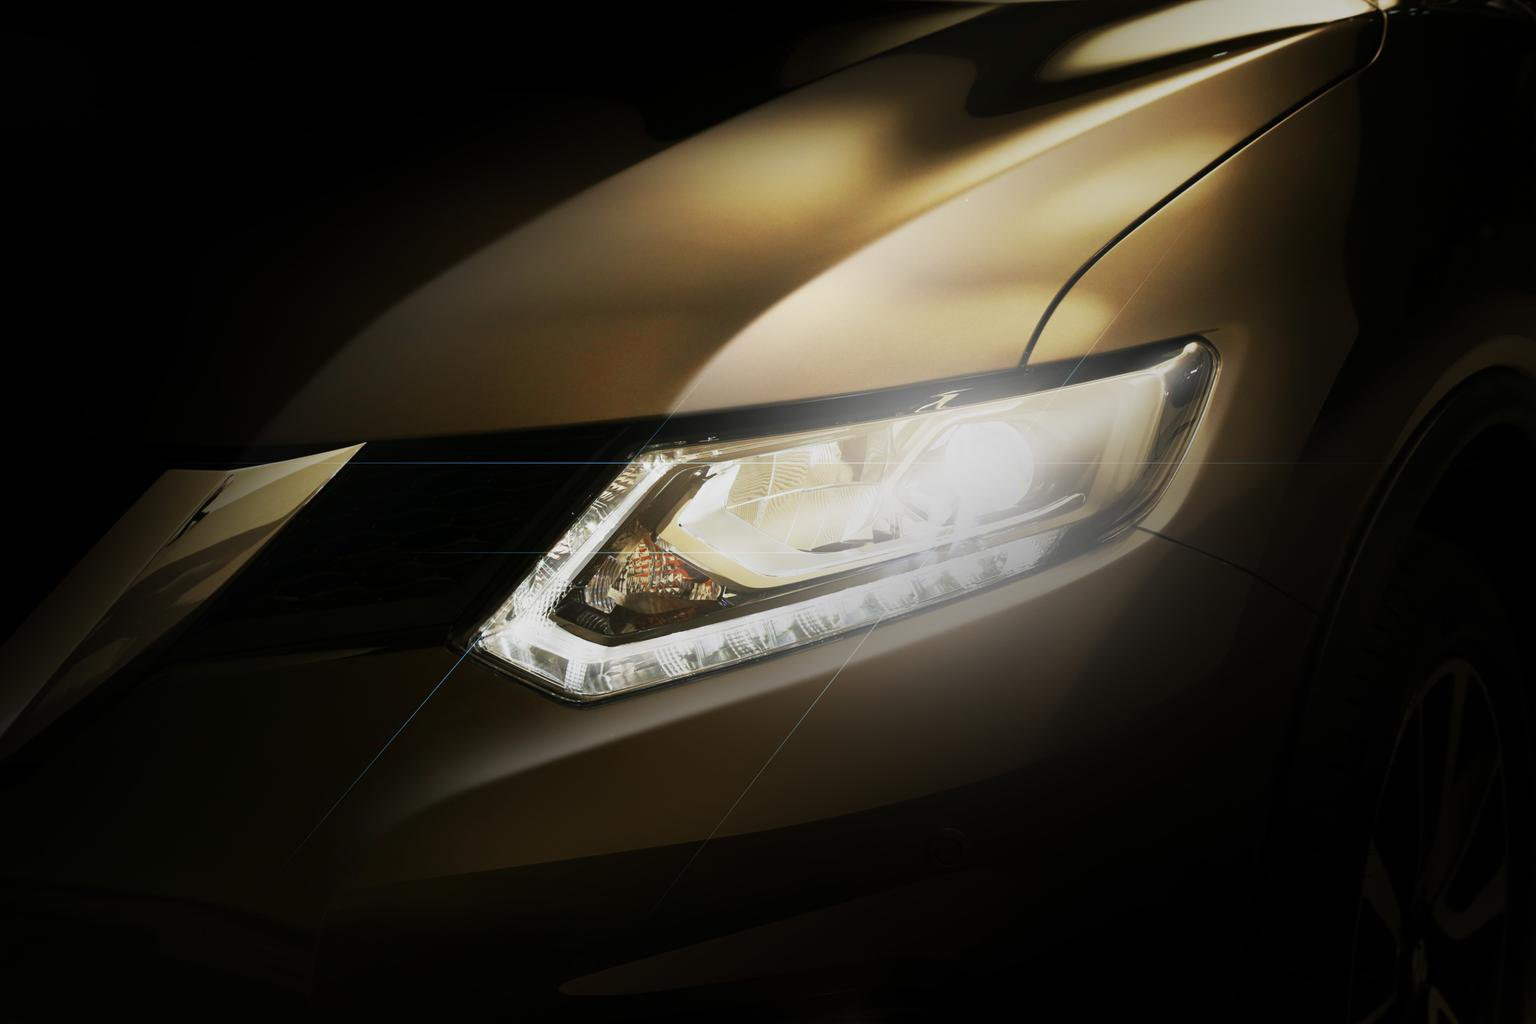 New Nissan X-Trail and Focus-rivalling hatch due in 2014